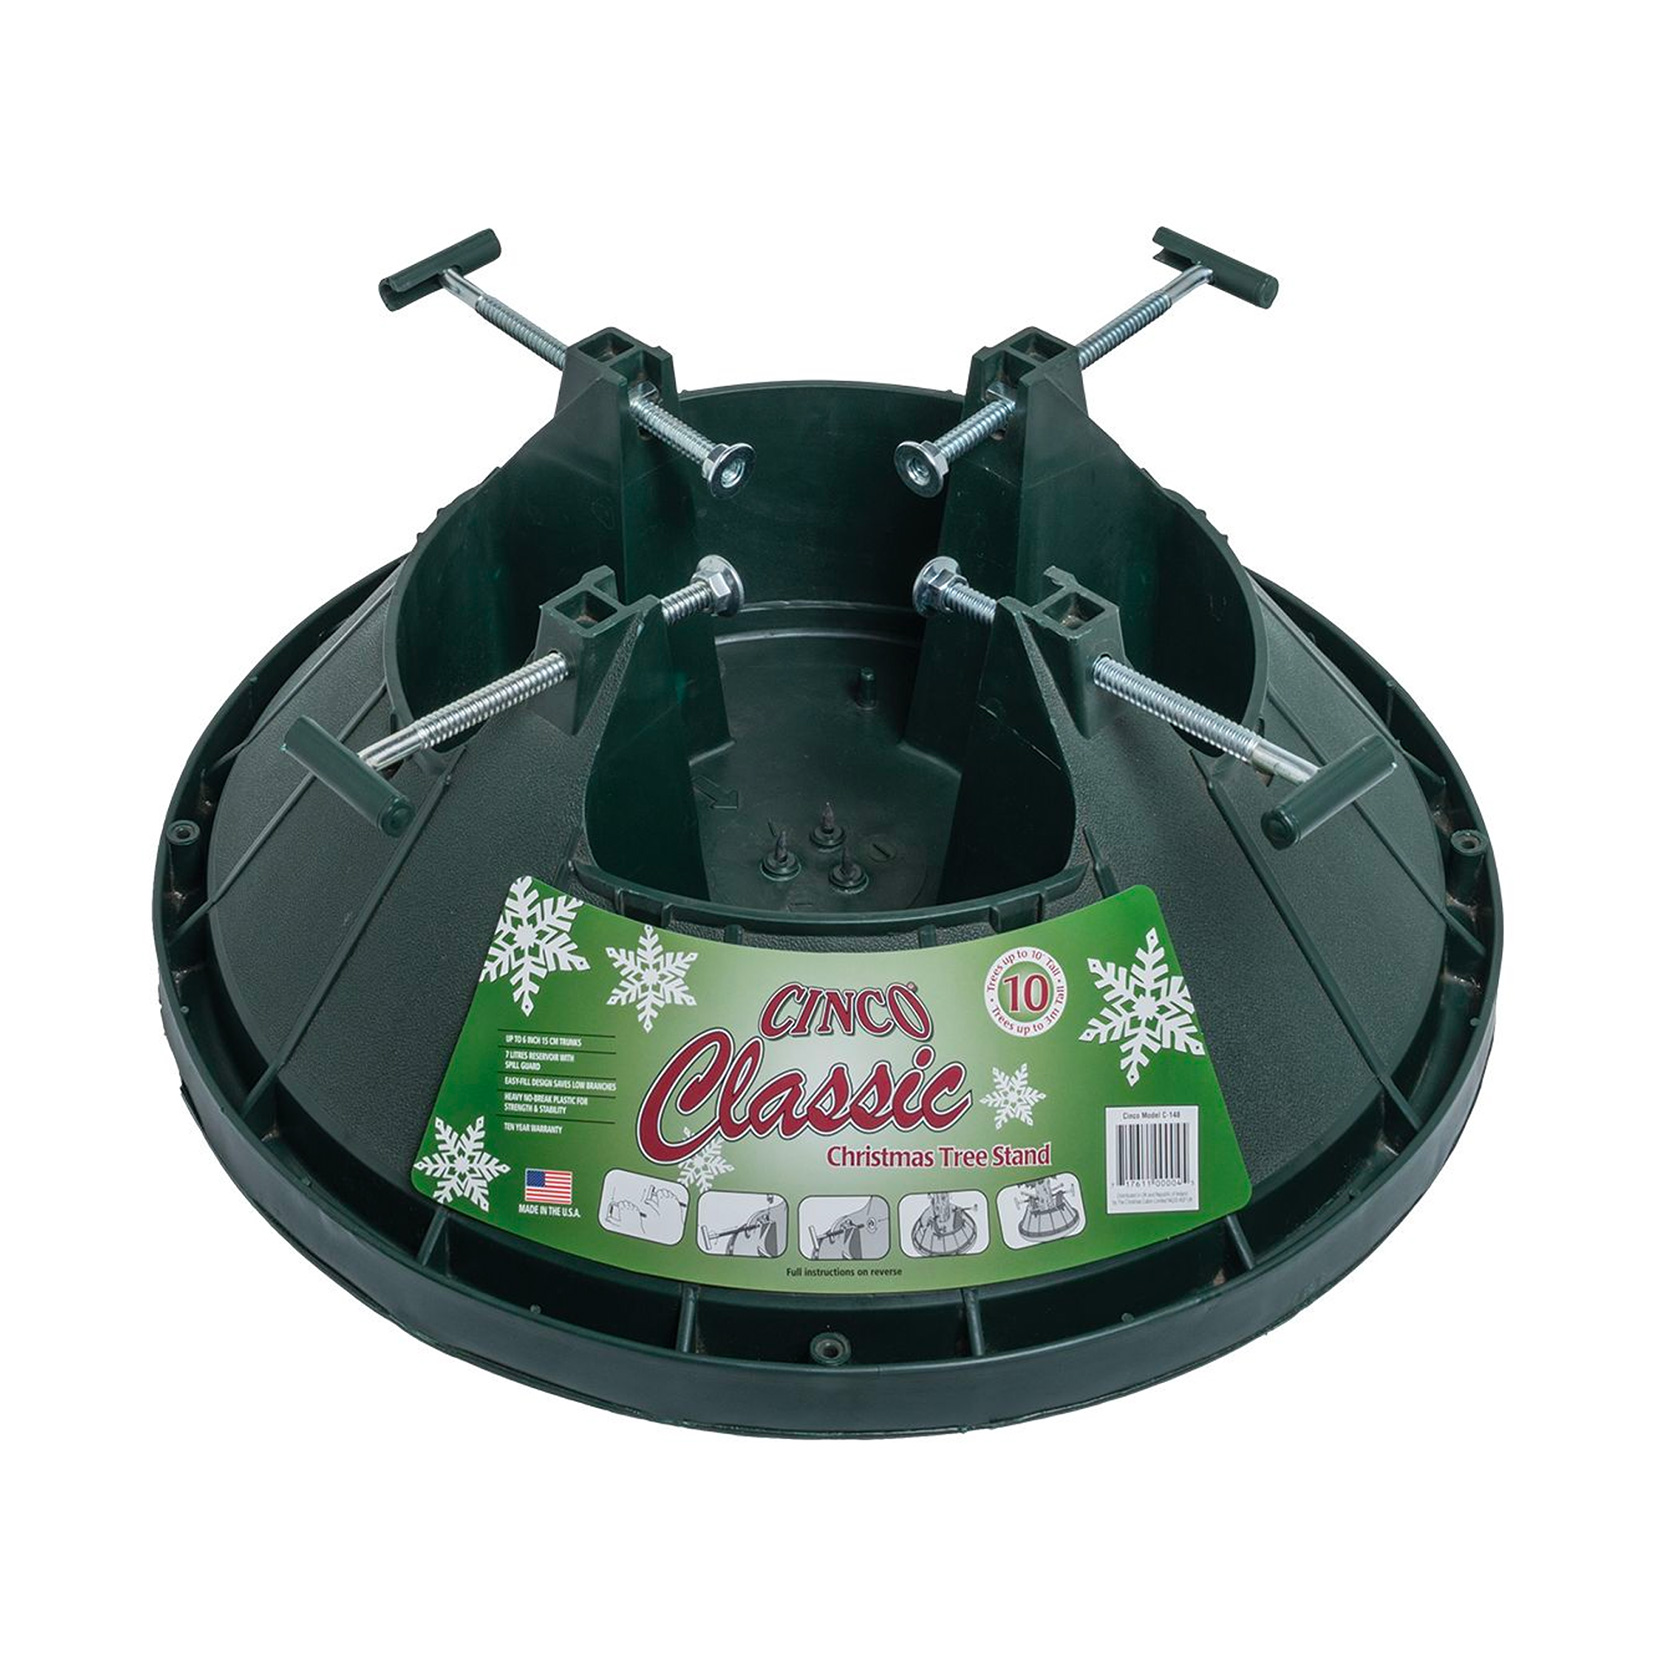 Santas Fields Cinco 10 Classic Tree stand